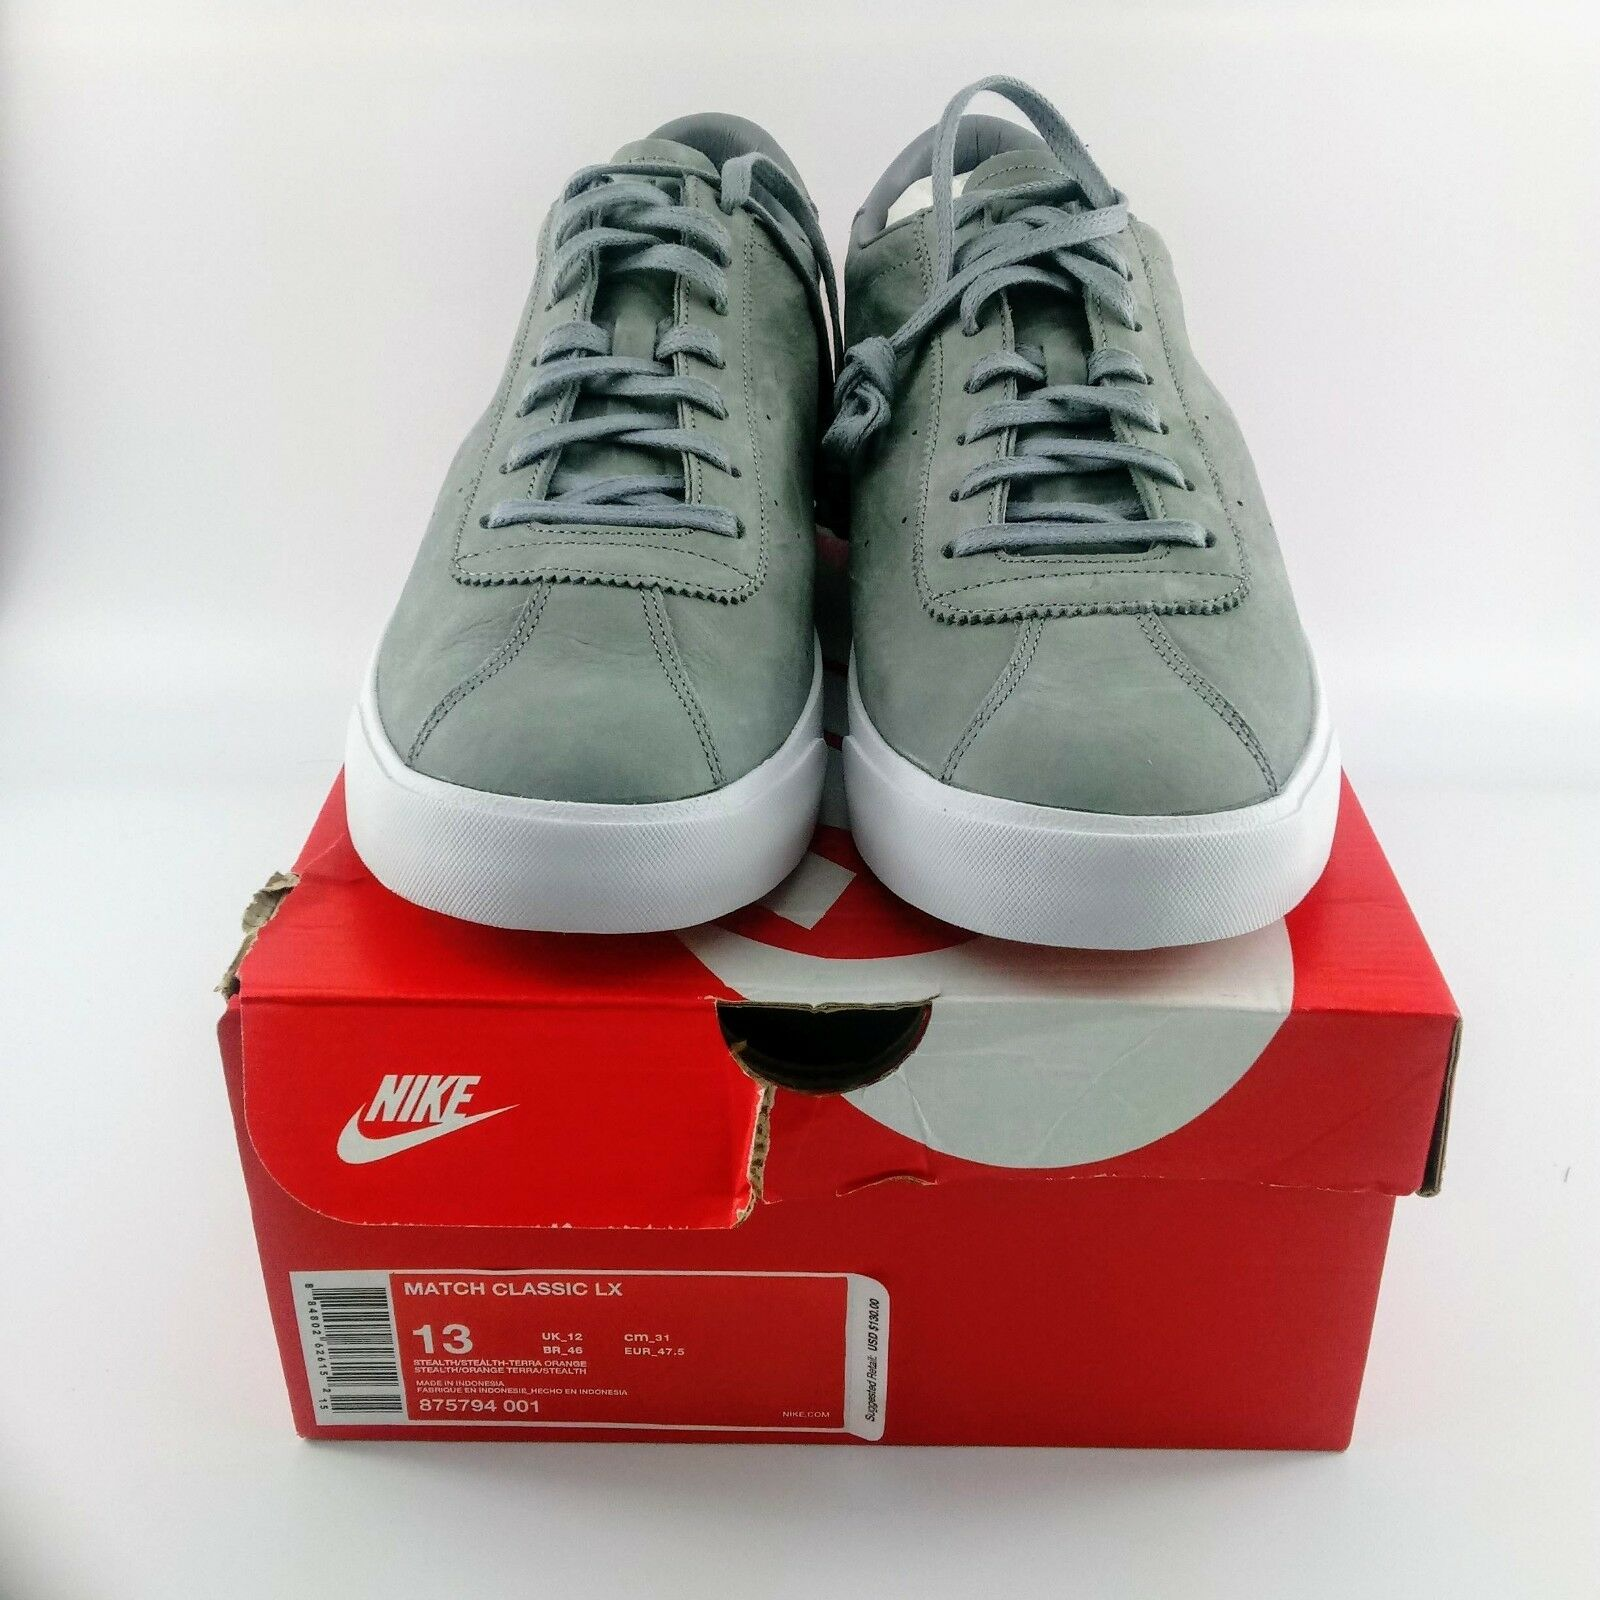 Nike Match Classic LX Tennis shoes - Grey   White - 875794-001 - Size  13